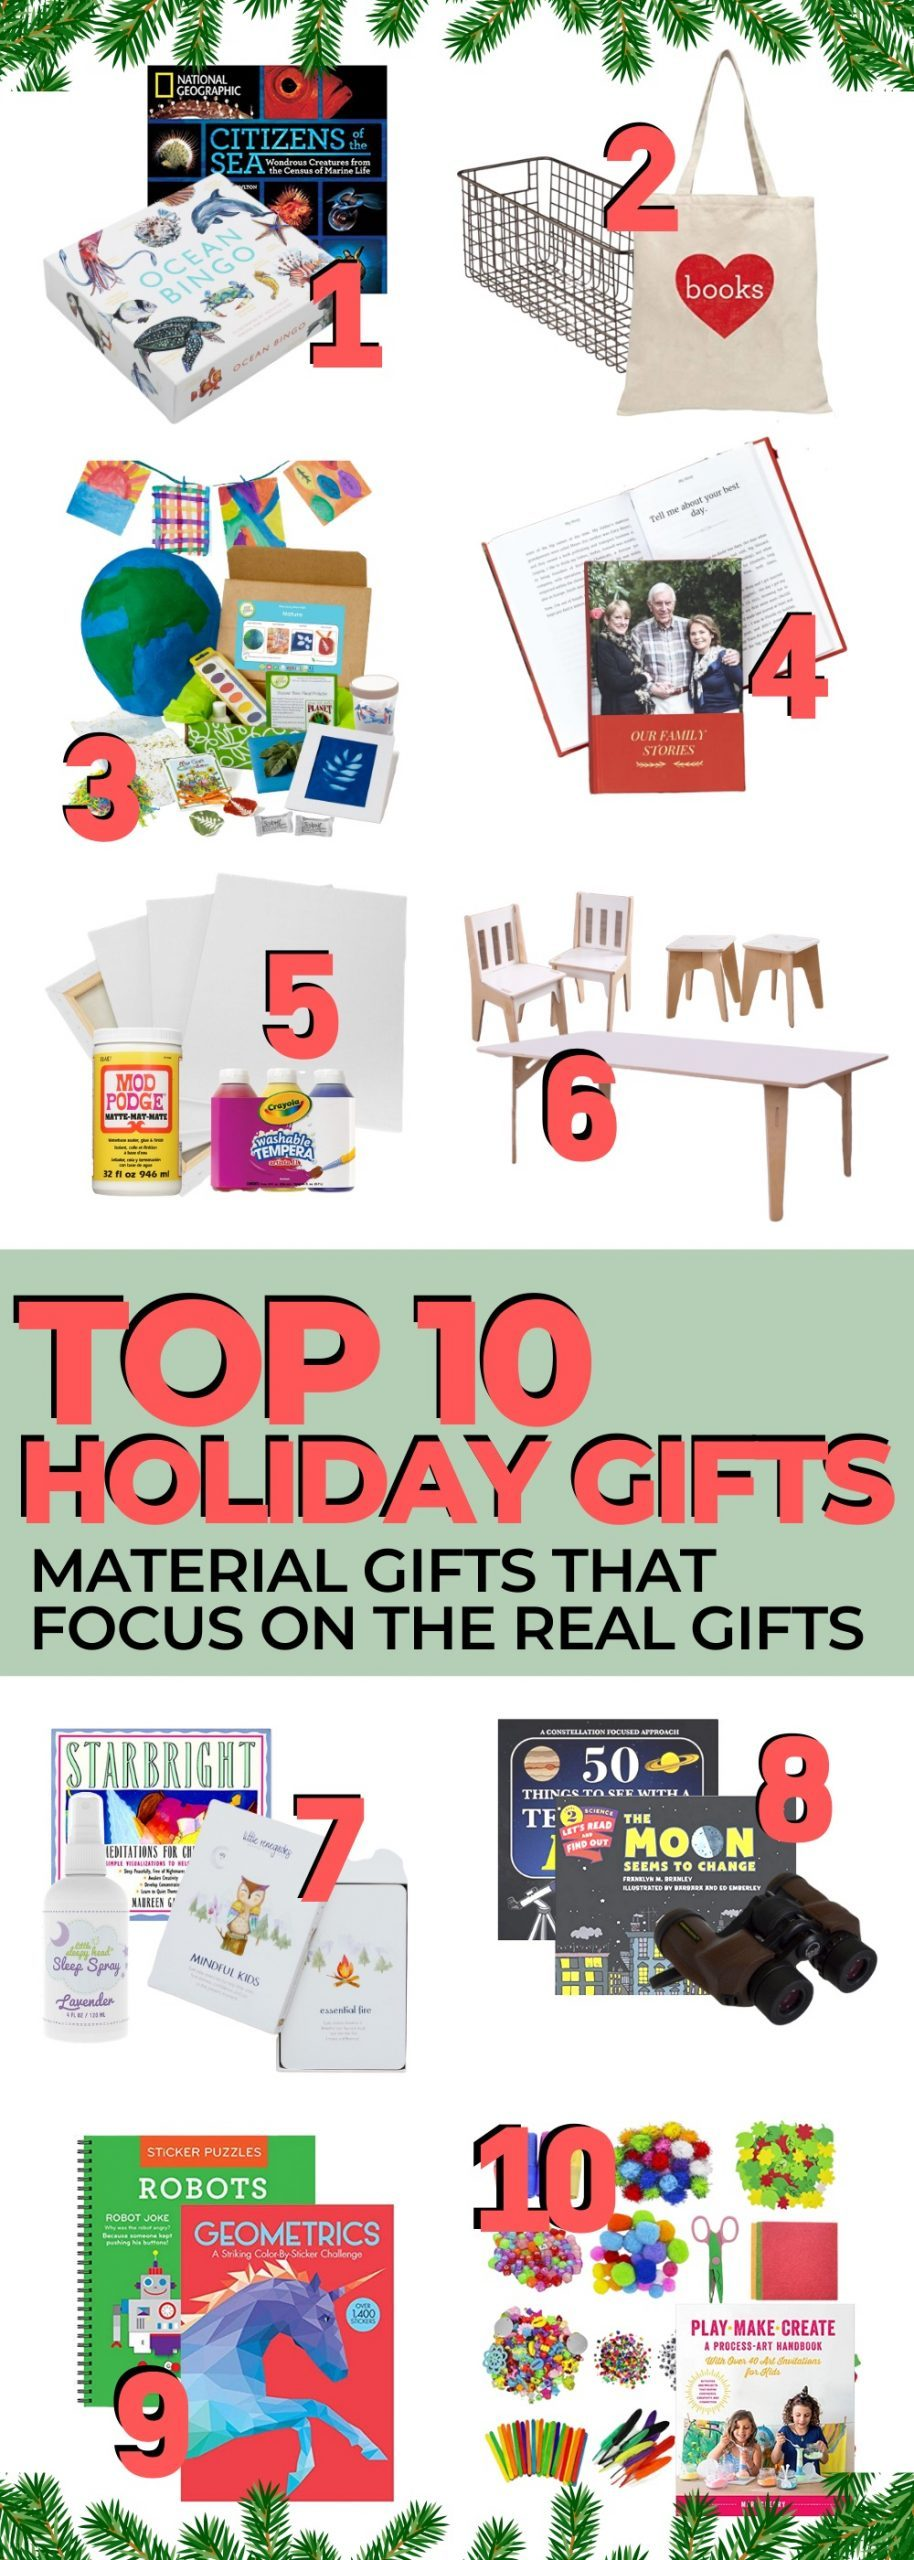 Simple Families Holiday Gift Guide 2019 | Simple Families